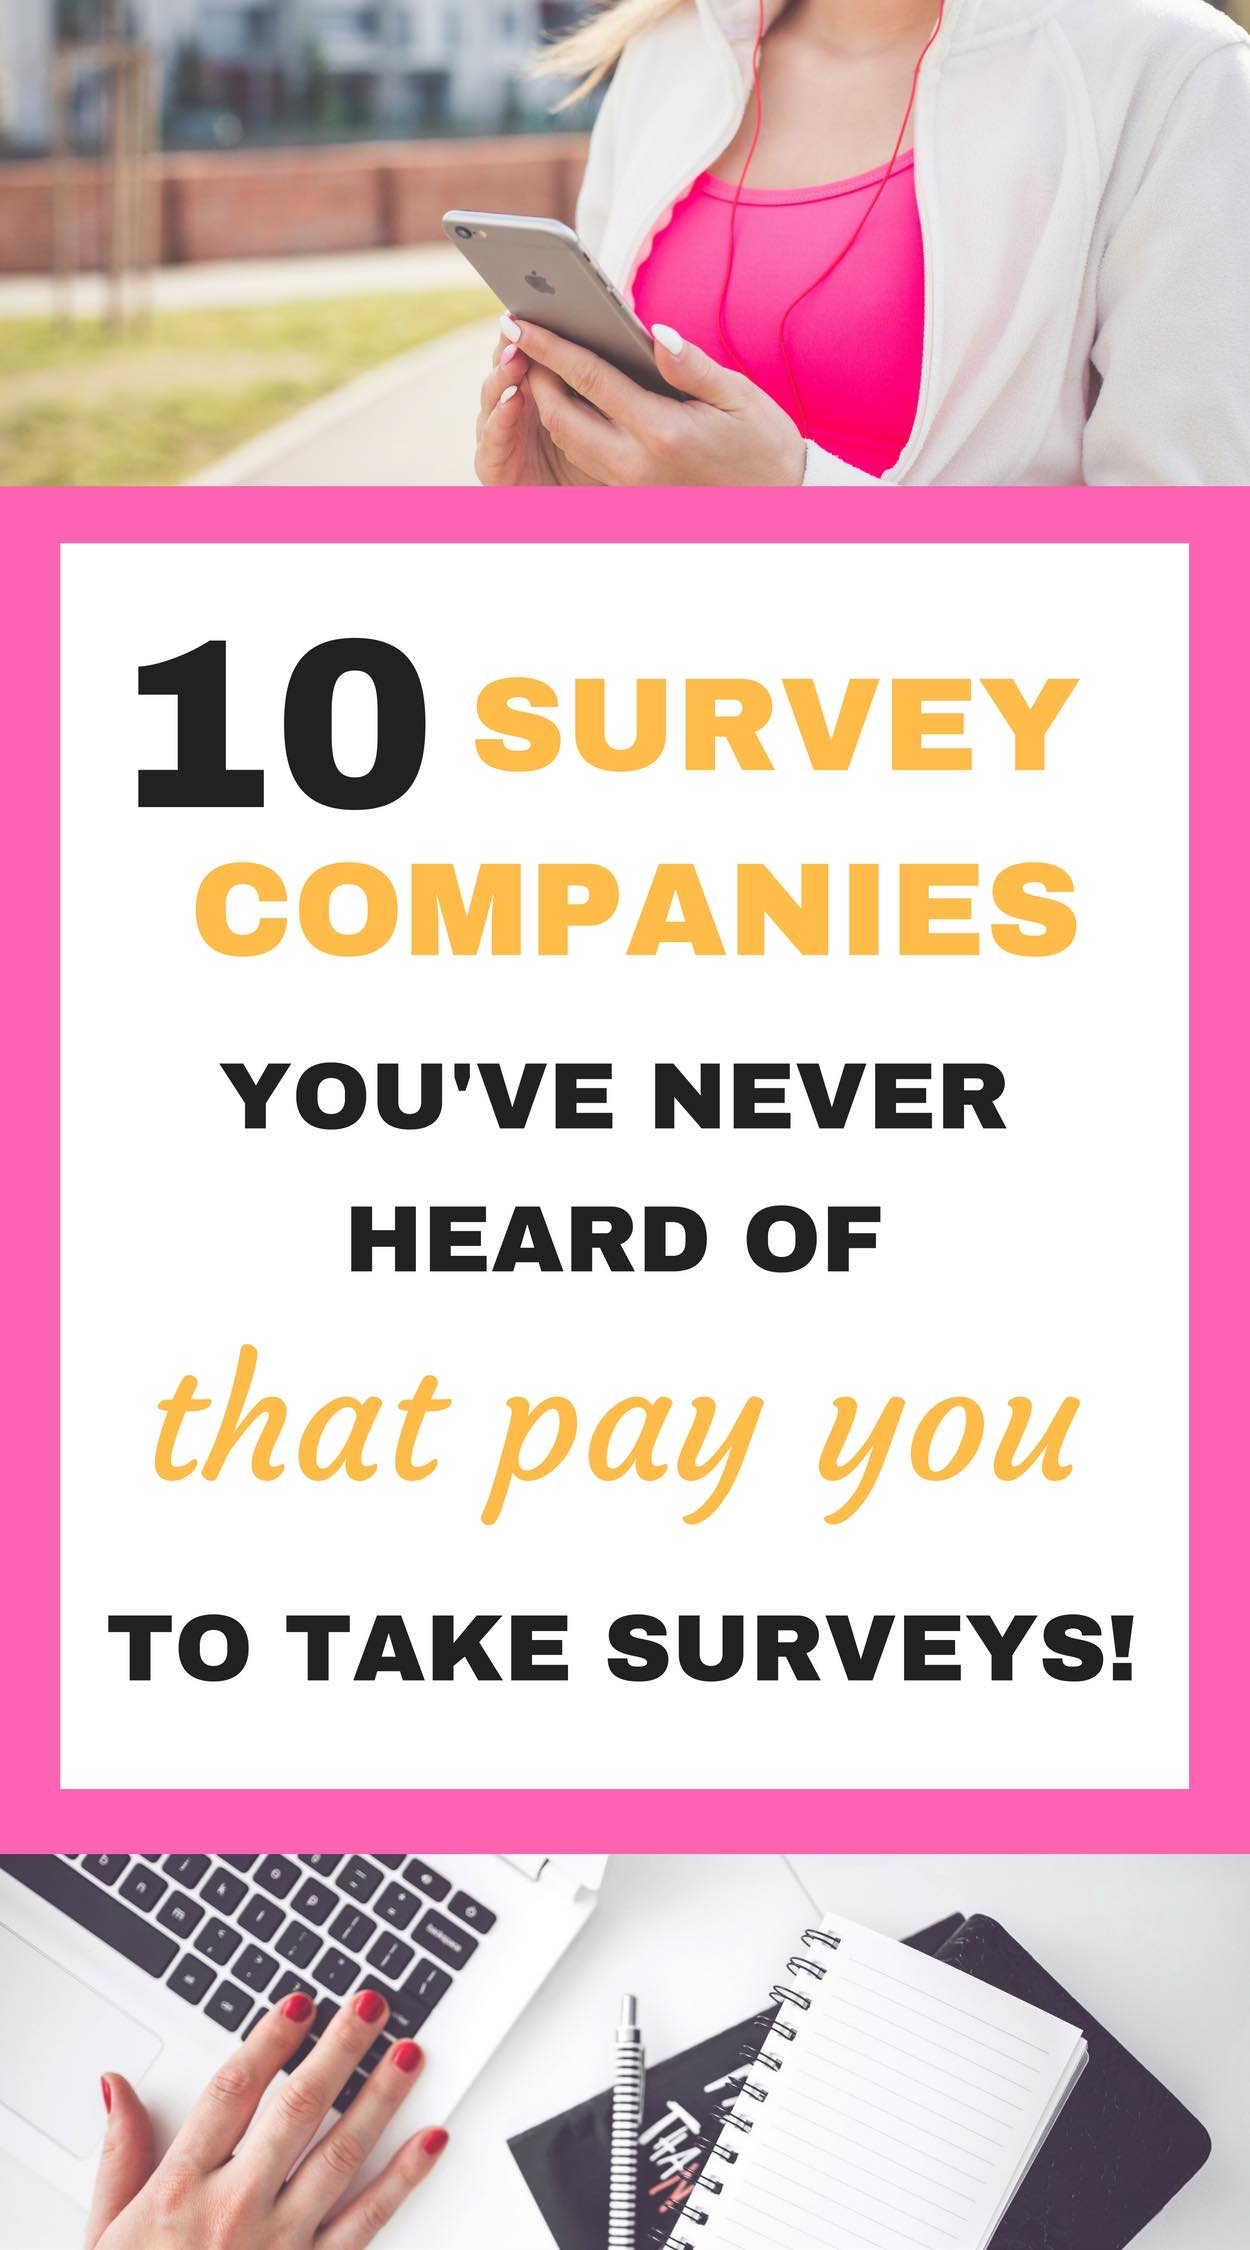 Legit survey companies that pay gift cards are hard to find! LOVE this list!